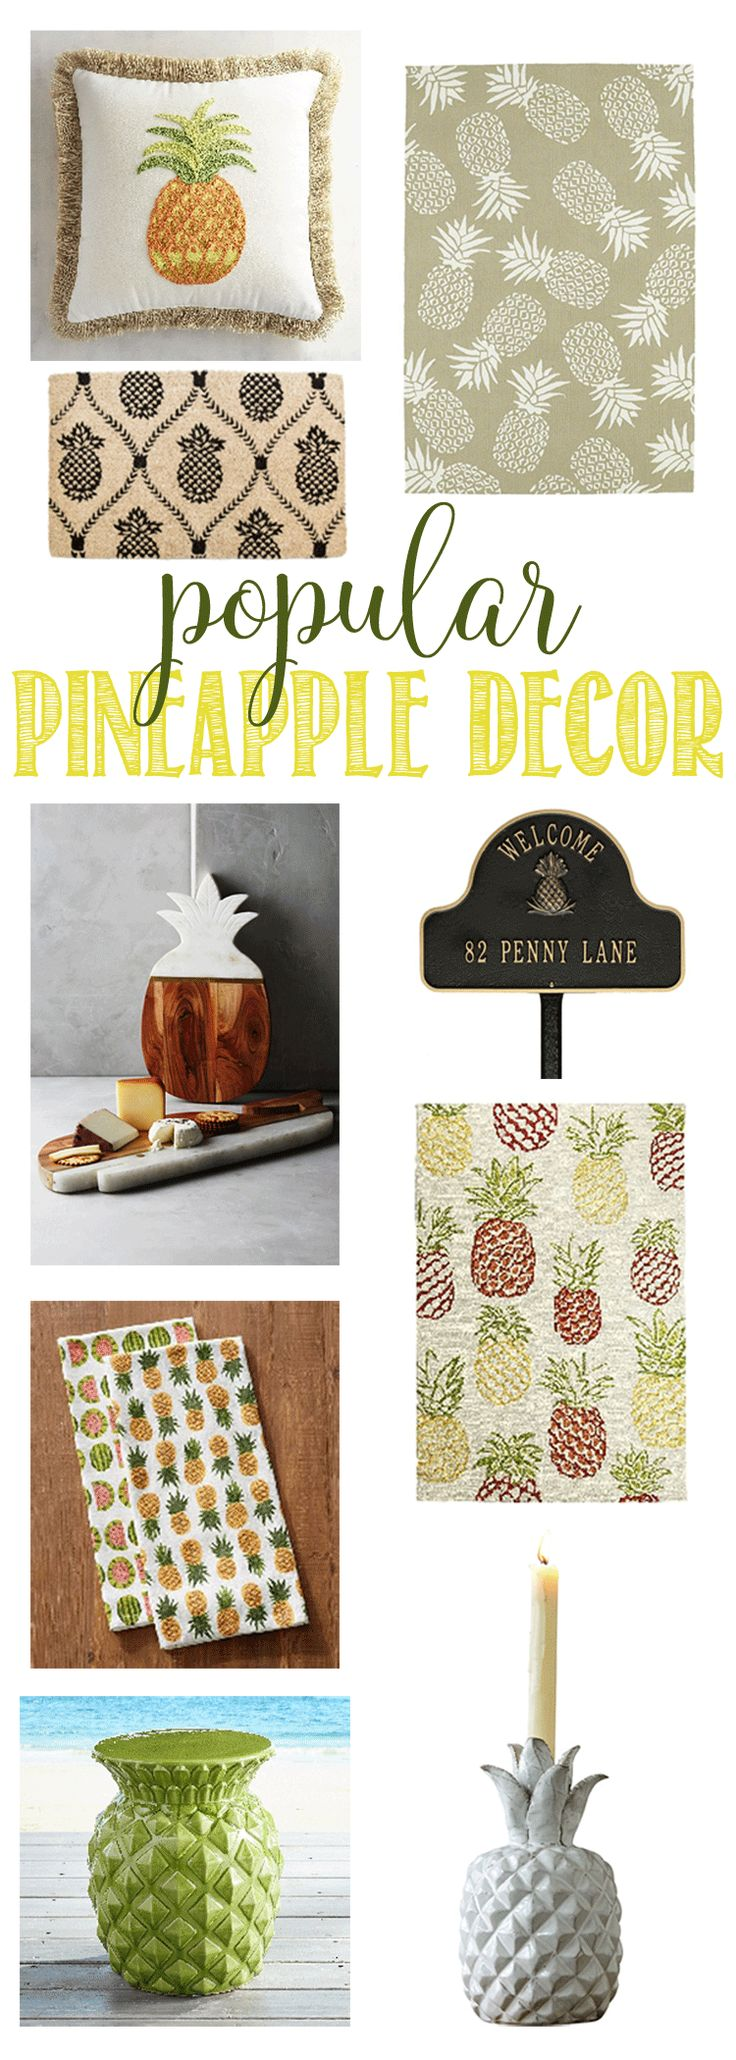 17 best images about diy home decor on pinterest milk for Home decor 365